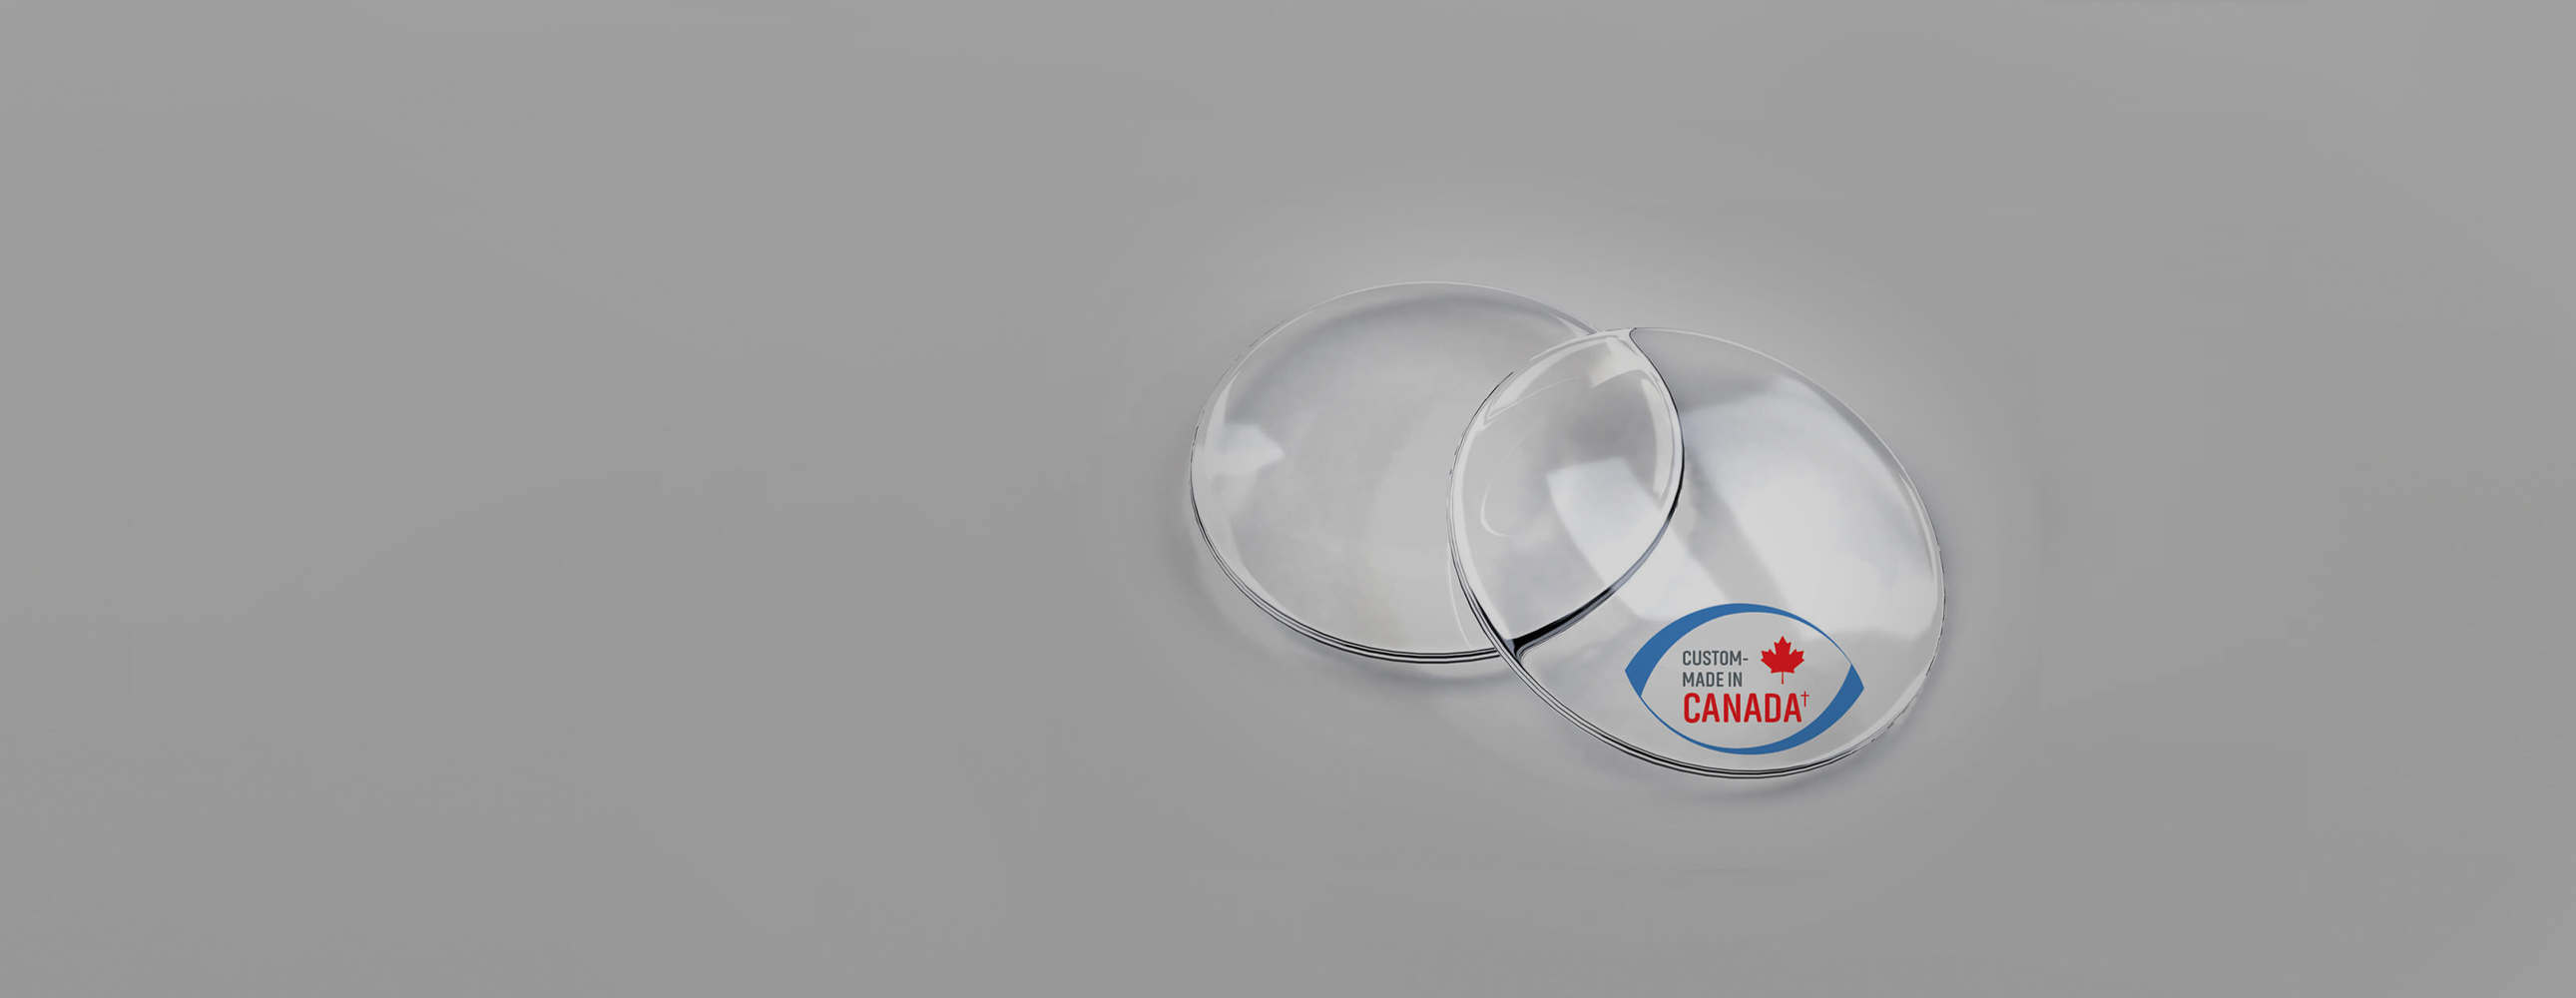 Lenses with made in Canada logo